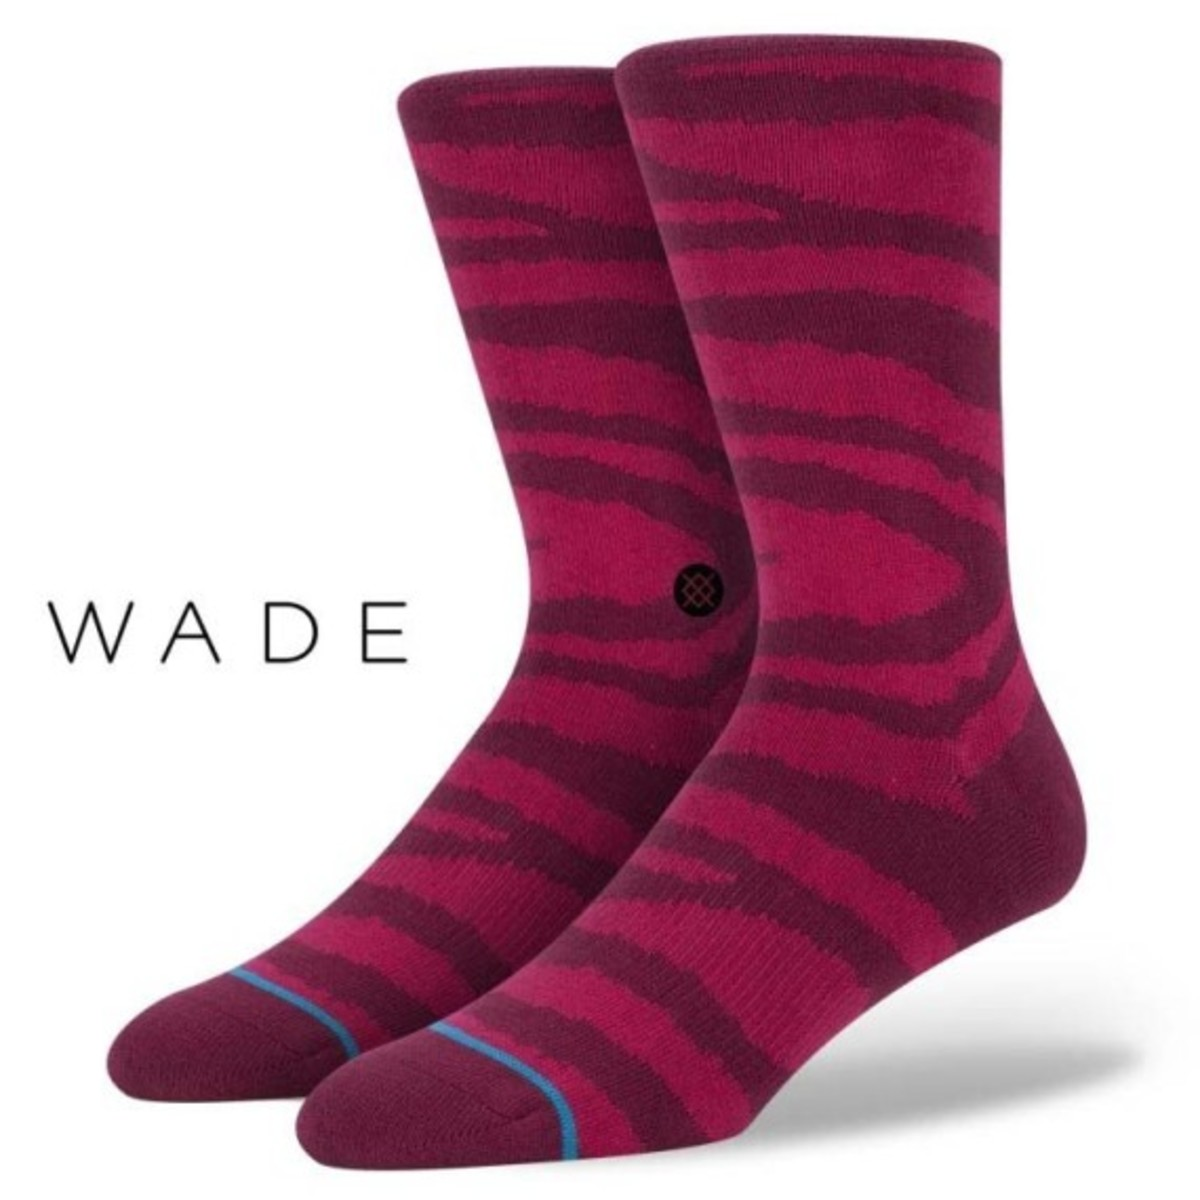 dwyane-wade-socks-collection-07